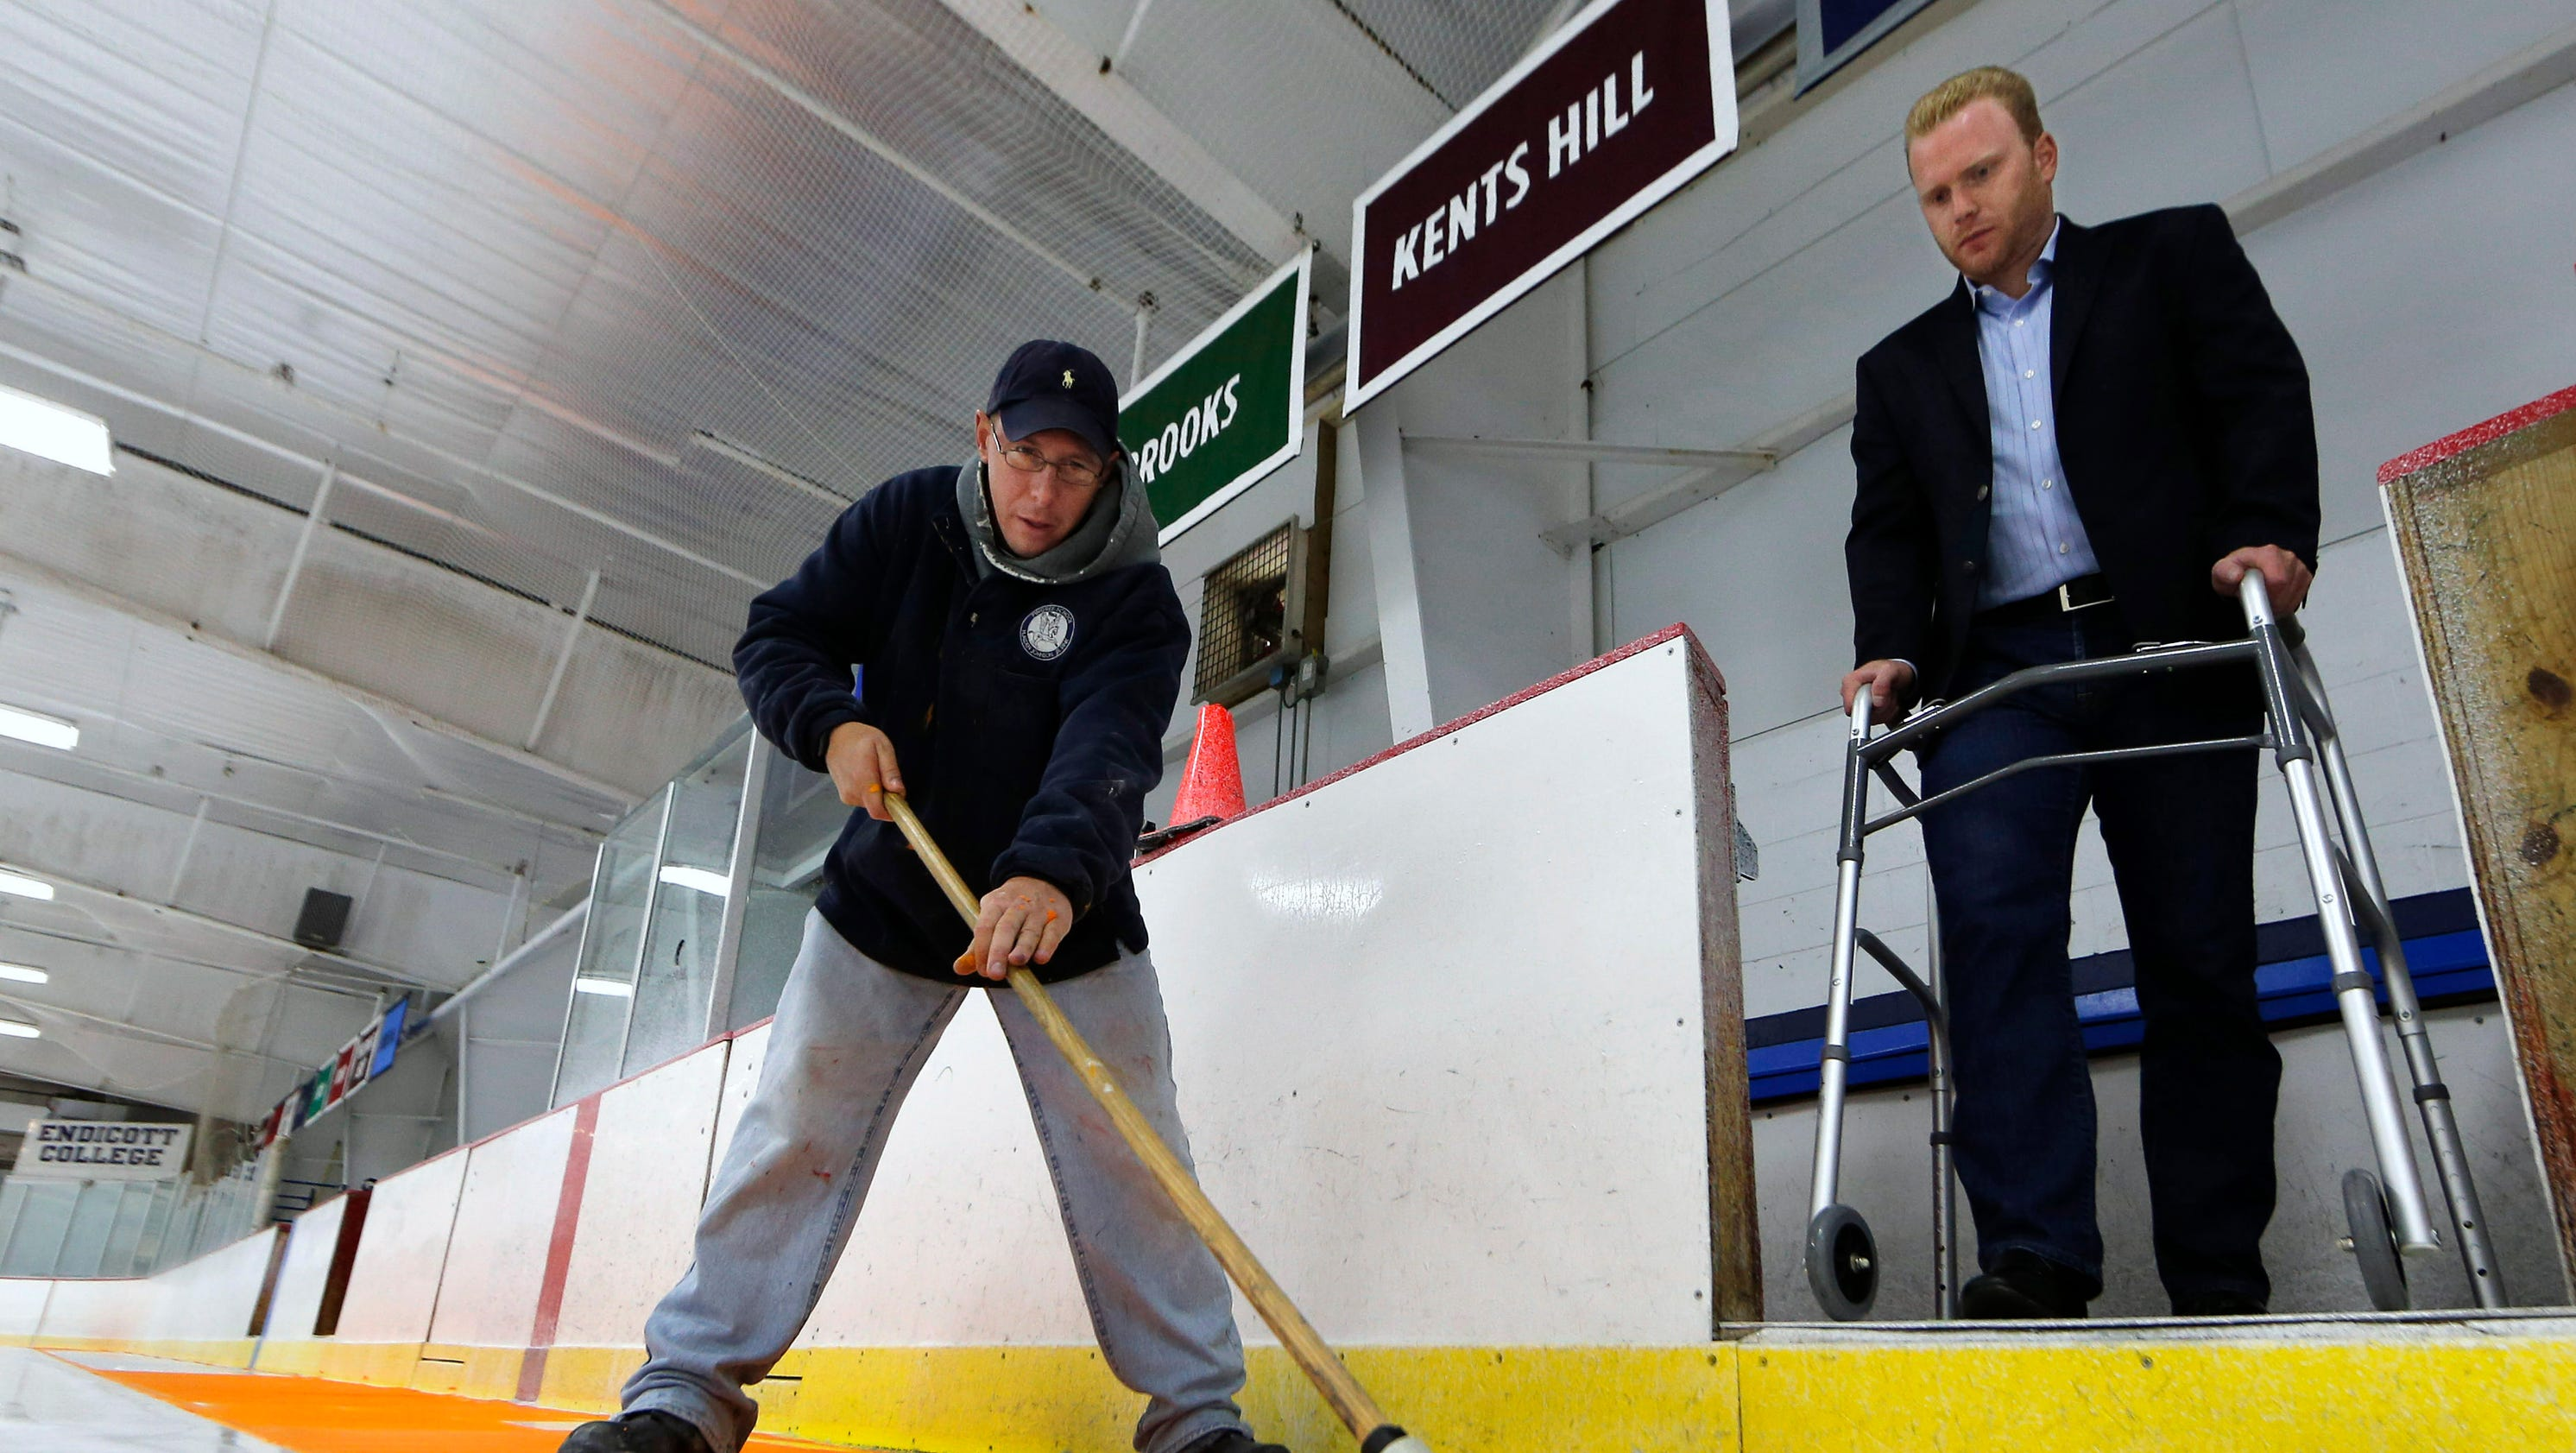 Personal statement for college hockey lines - mfawriting61 ...